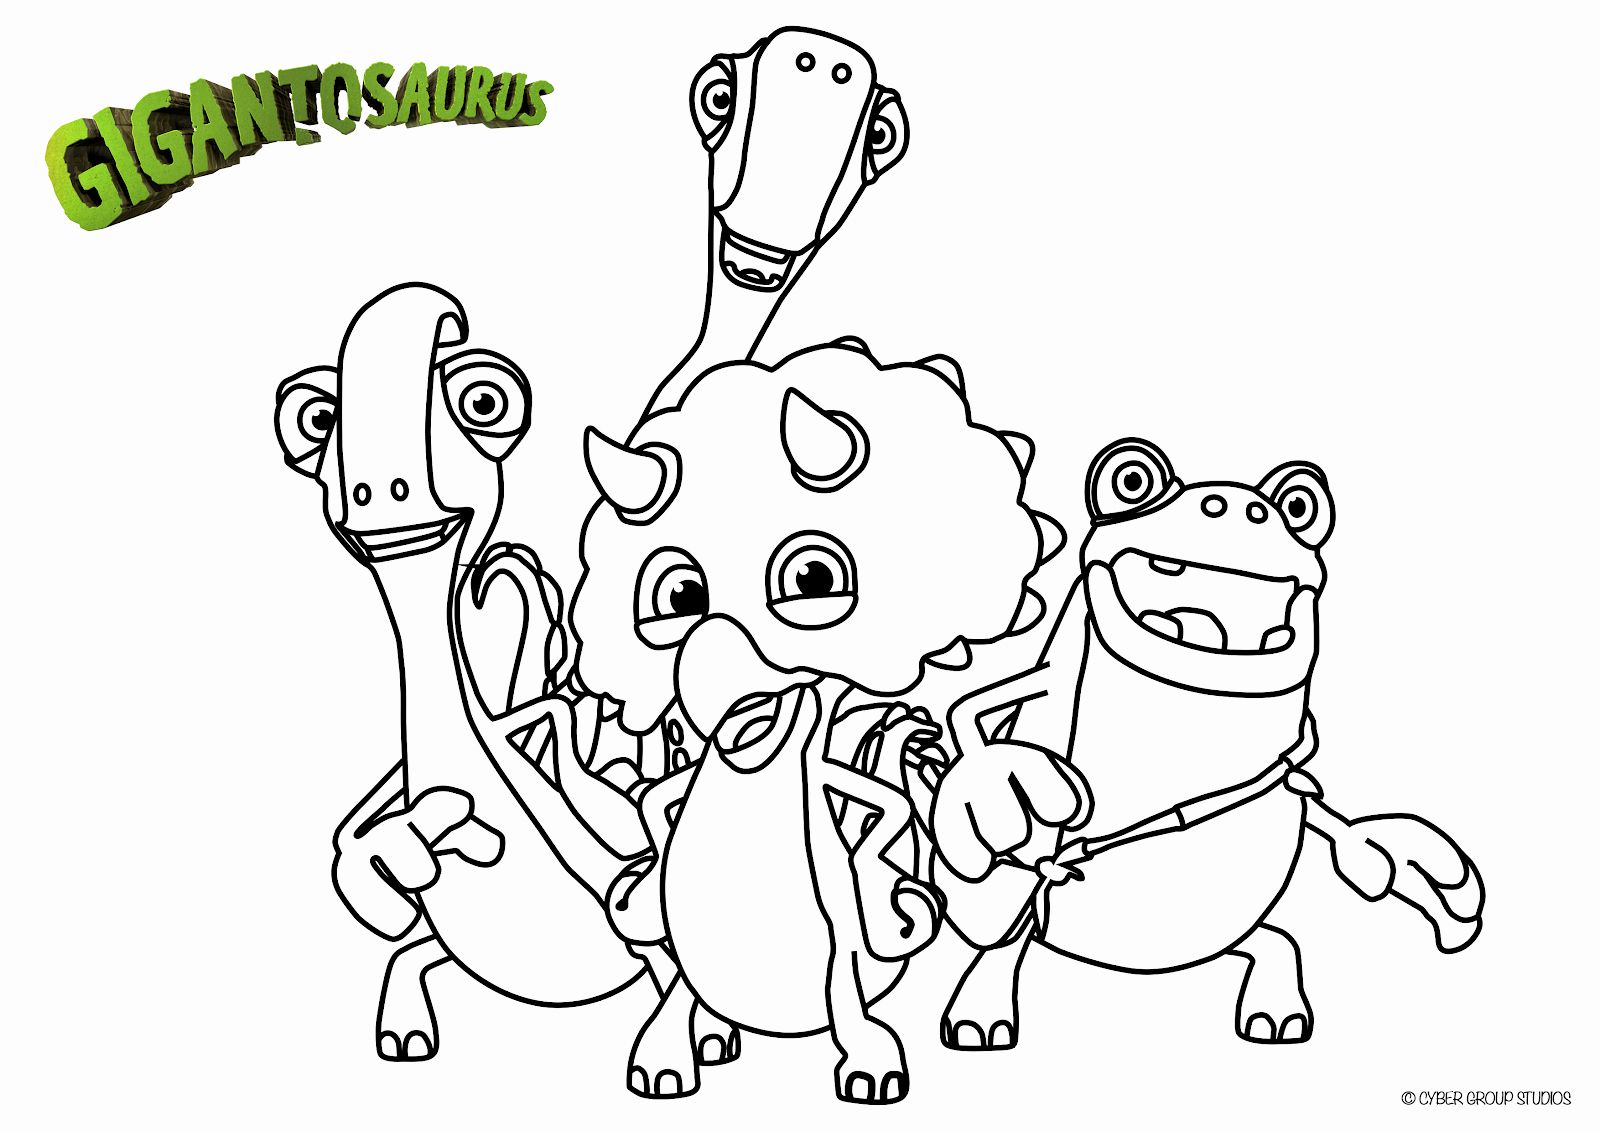 Disney Junior Coloring Book Awesome Gigantosaurus On Disney Junior Free Printables In 2021 Coloring Pages Disney Coloring Pages Disney Junior